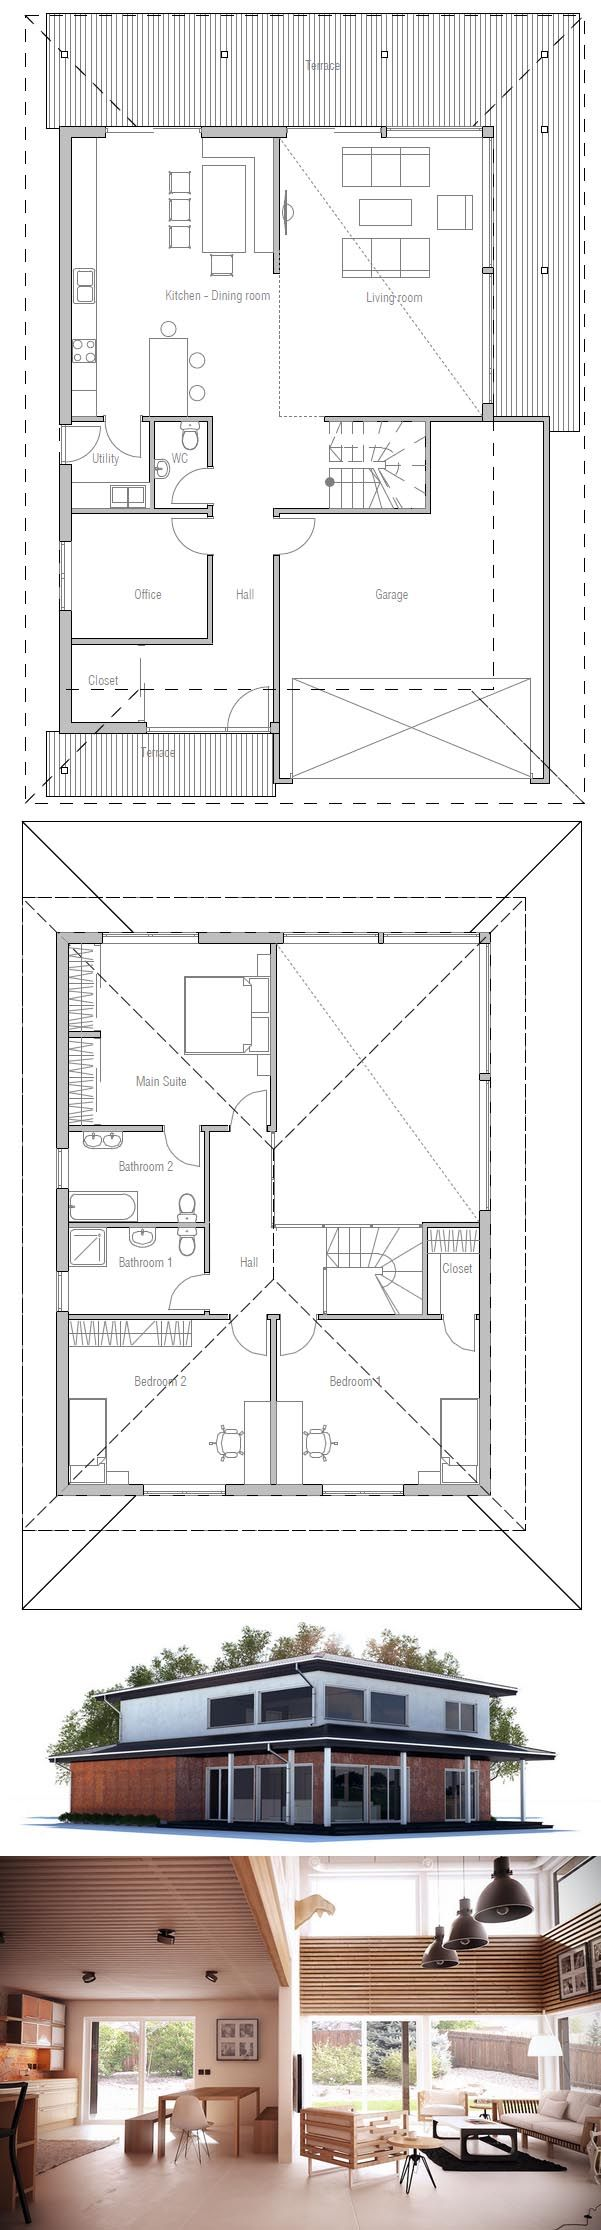 ^ 1000+ images about Haus on Pinterest House plans, Small houses ...